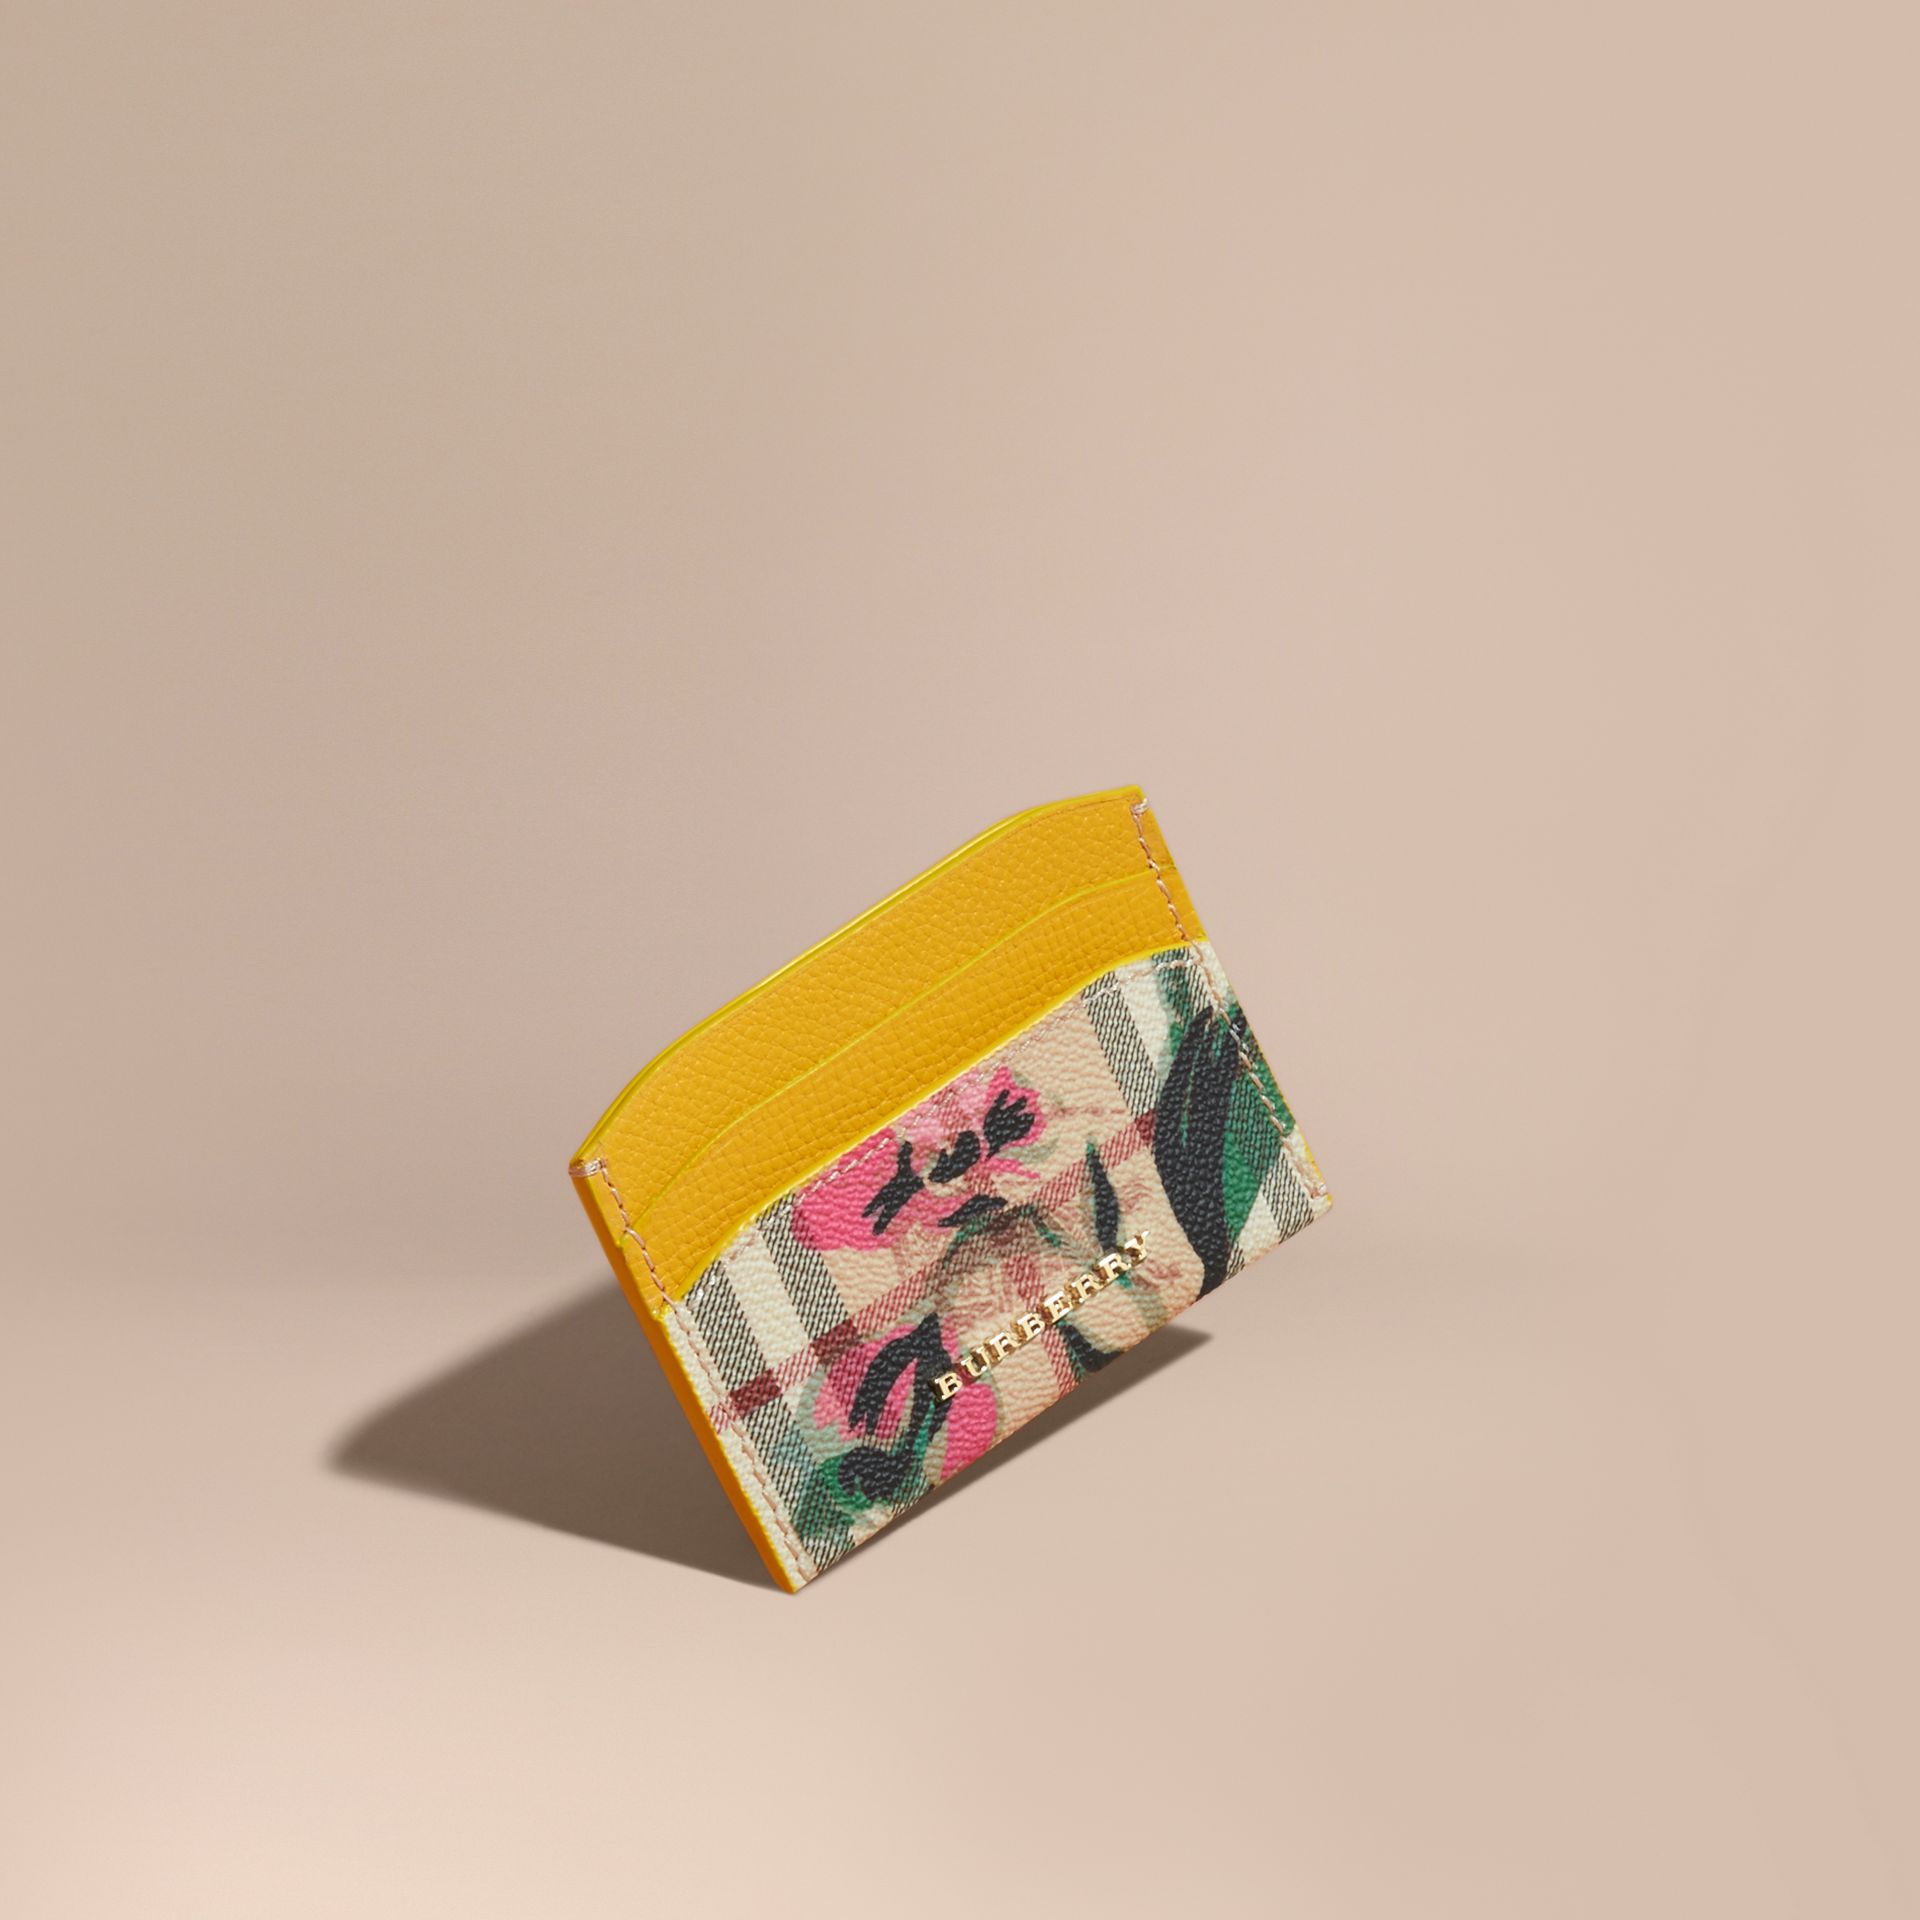 Peony Rose Print Haymarket Check and Leather Card Case in Larch Yellow/emerald Green - gallery image 1